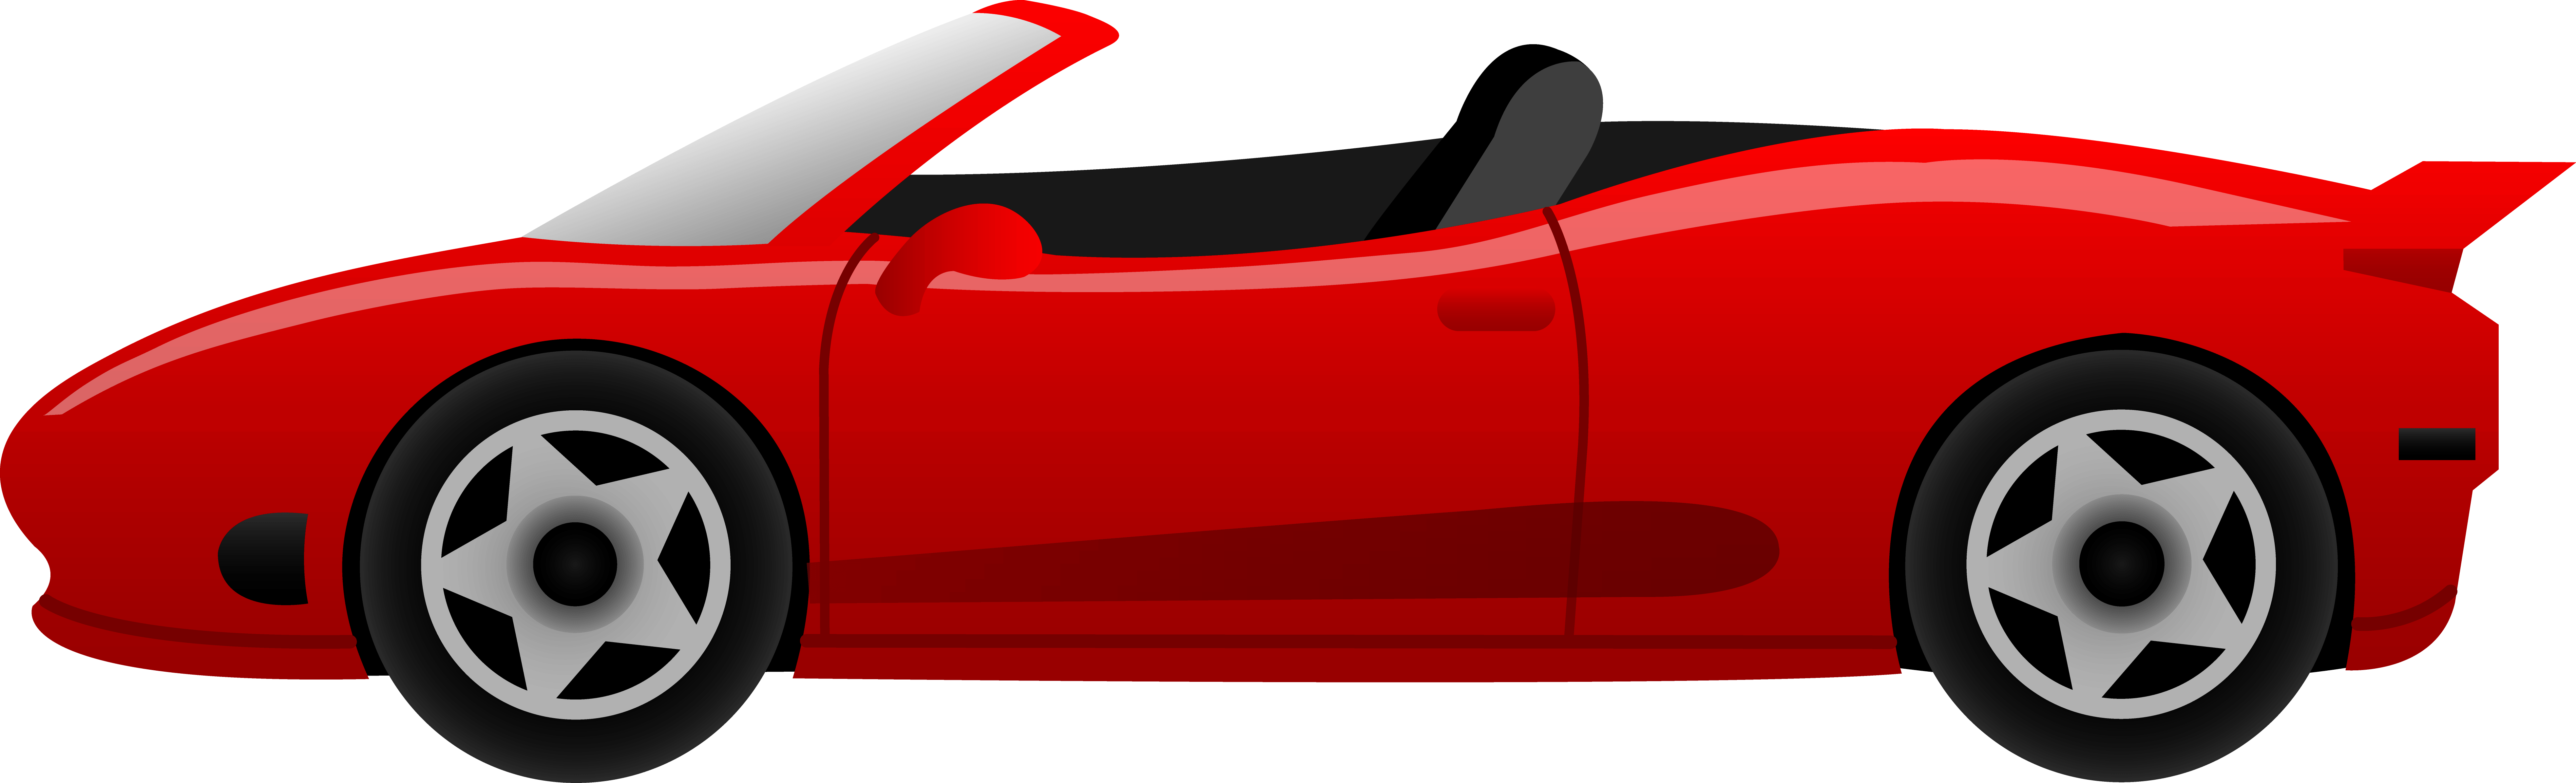 Clipart nice car png black and white download Free Nice Car Cliparts, Download Free Clip Art, Free Clip Art on ... png black and white download